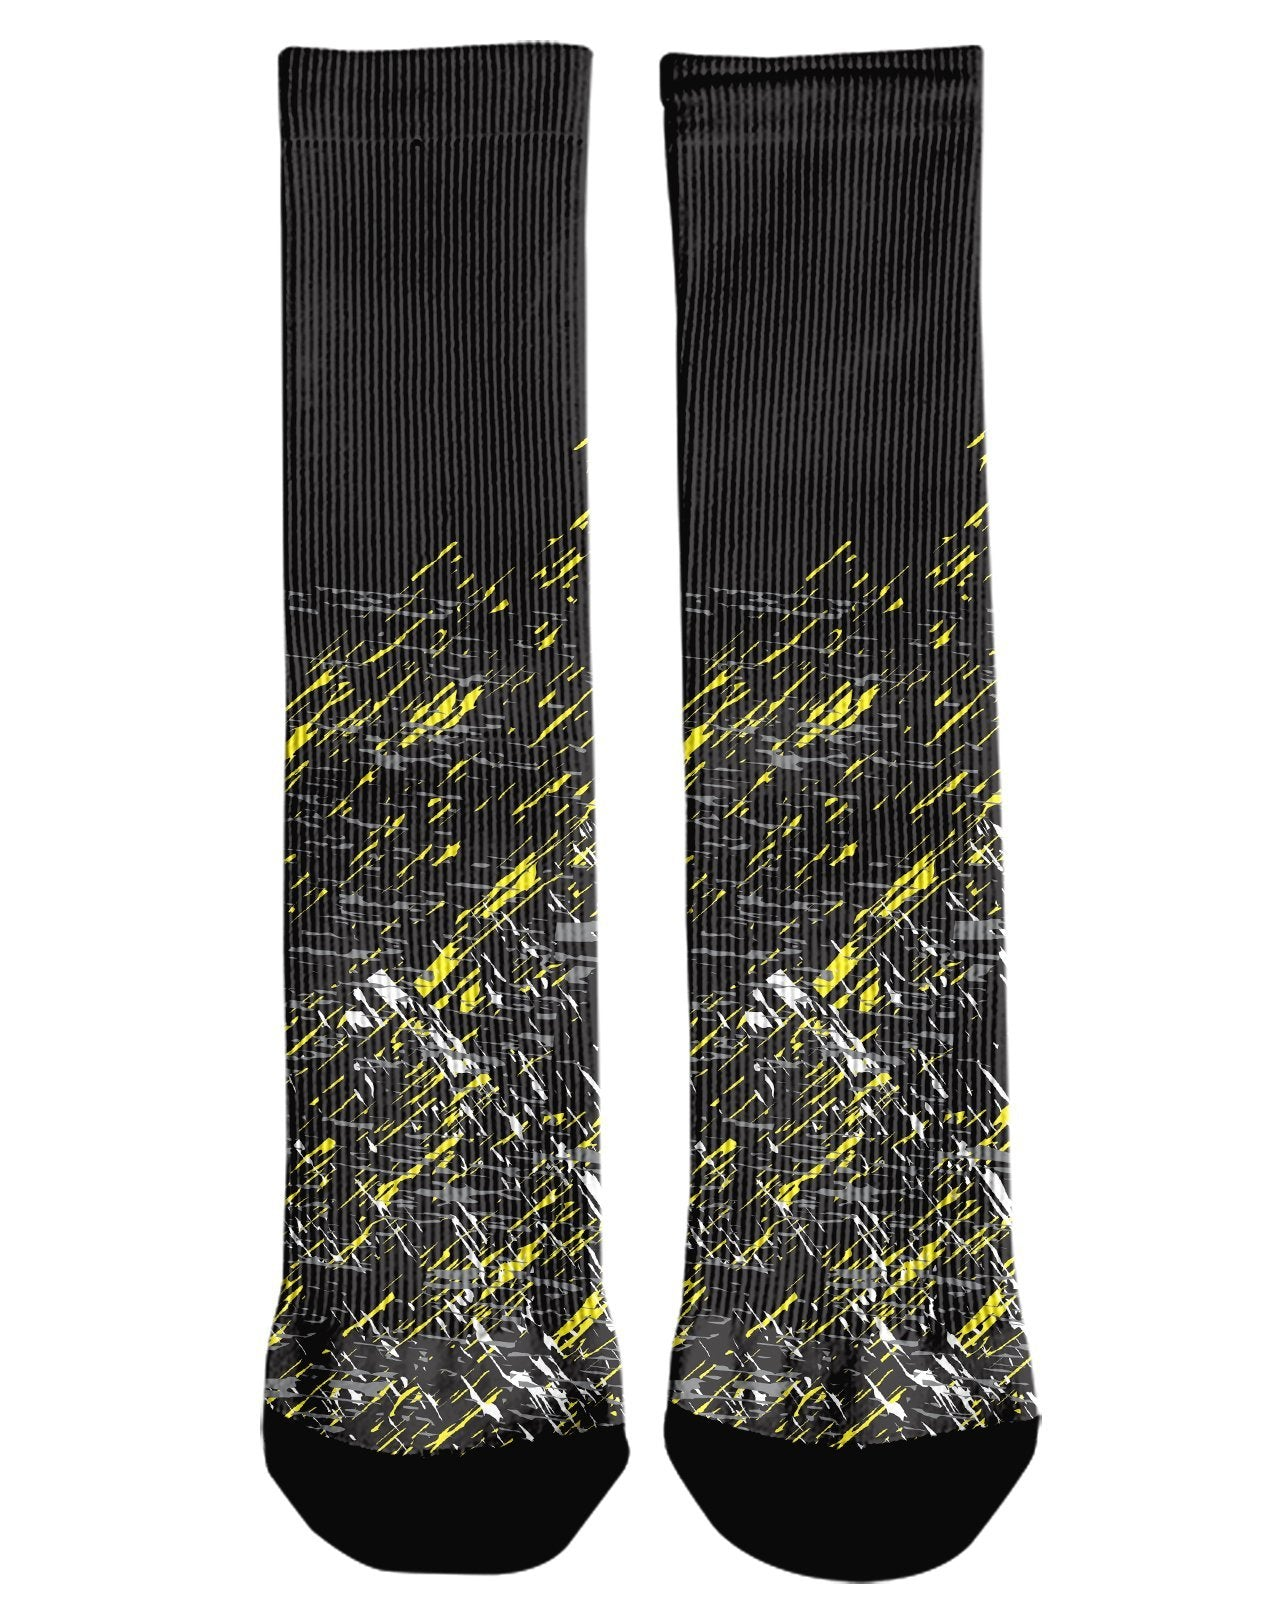 F3Custom - Splatter Crew Socks